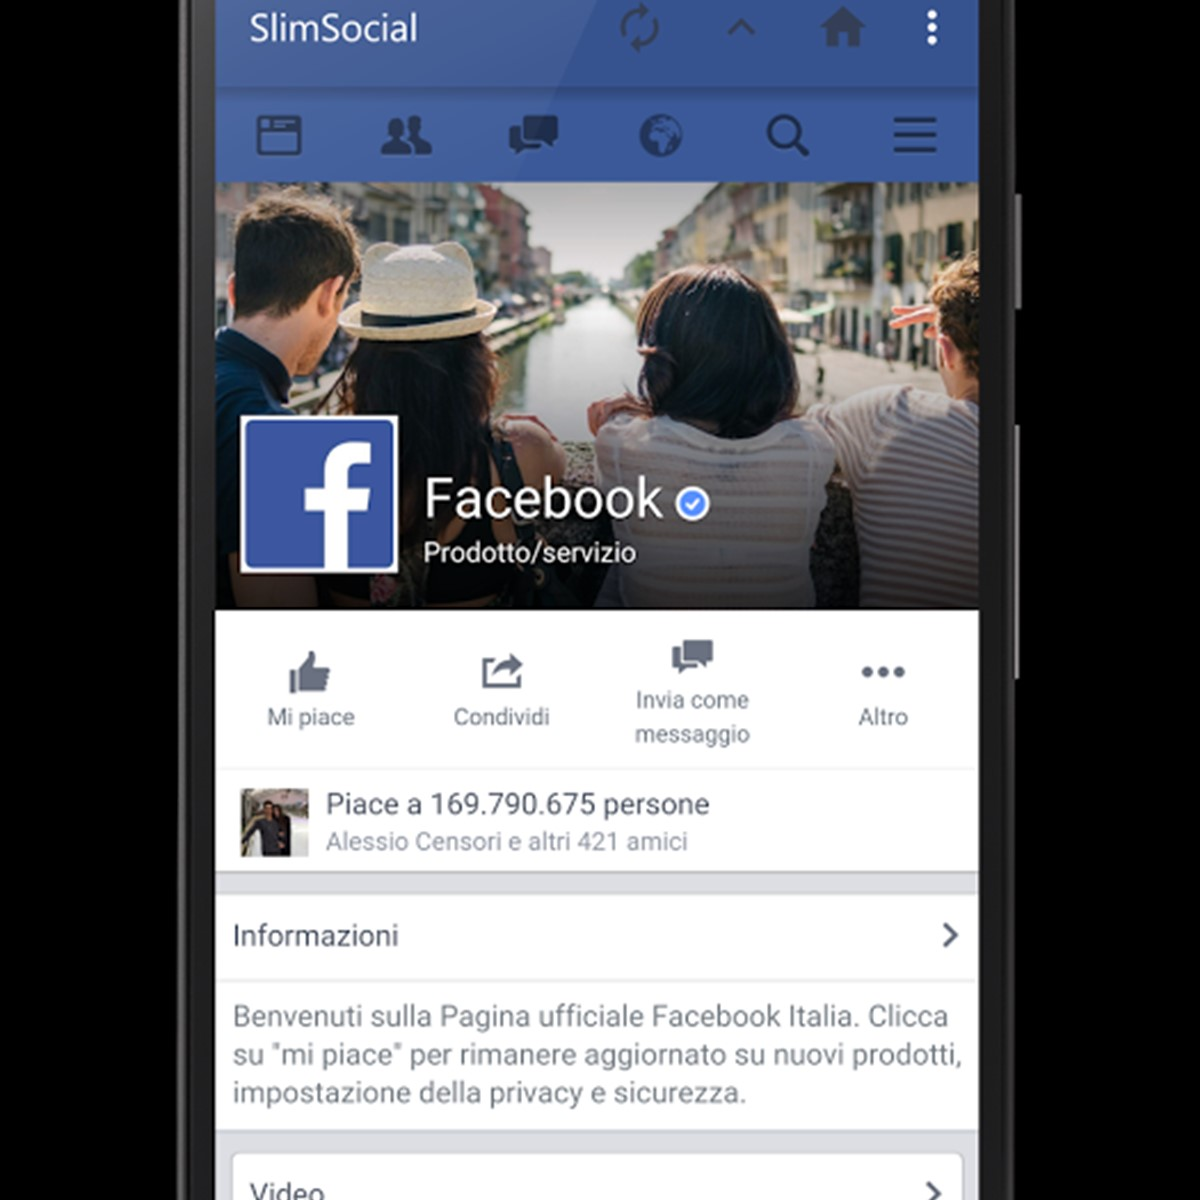 SlimSocial for Facebook Alternatives and Similar Apps